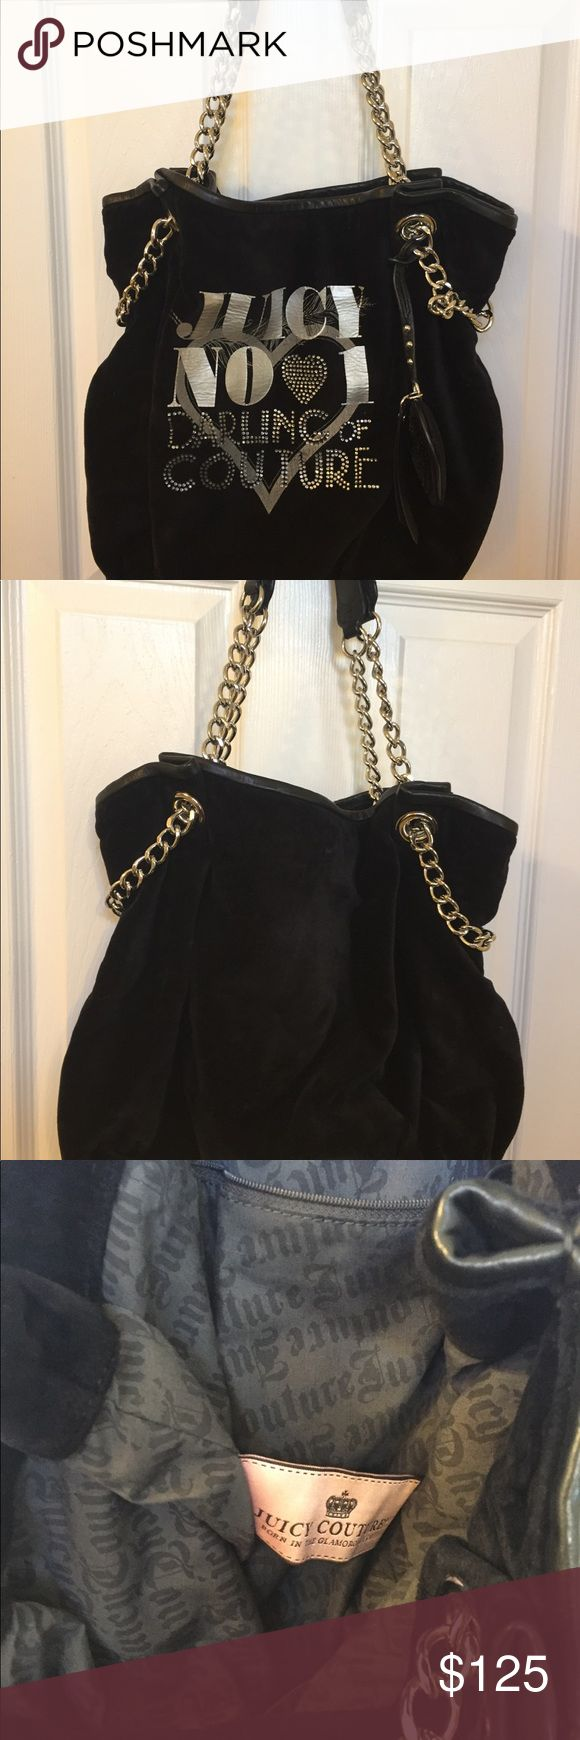 Juicy Couture Bag Like new bag by Juicy Couture, fashionable and with bling Juicy Couture Bags Shoulder Bags